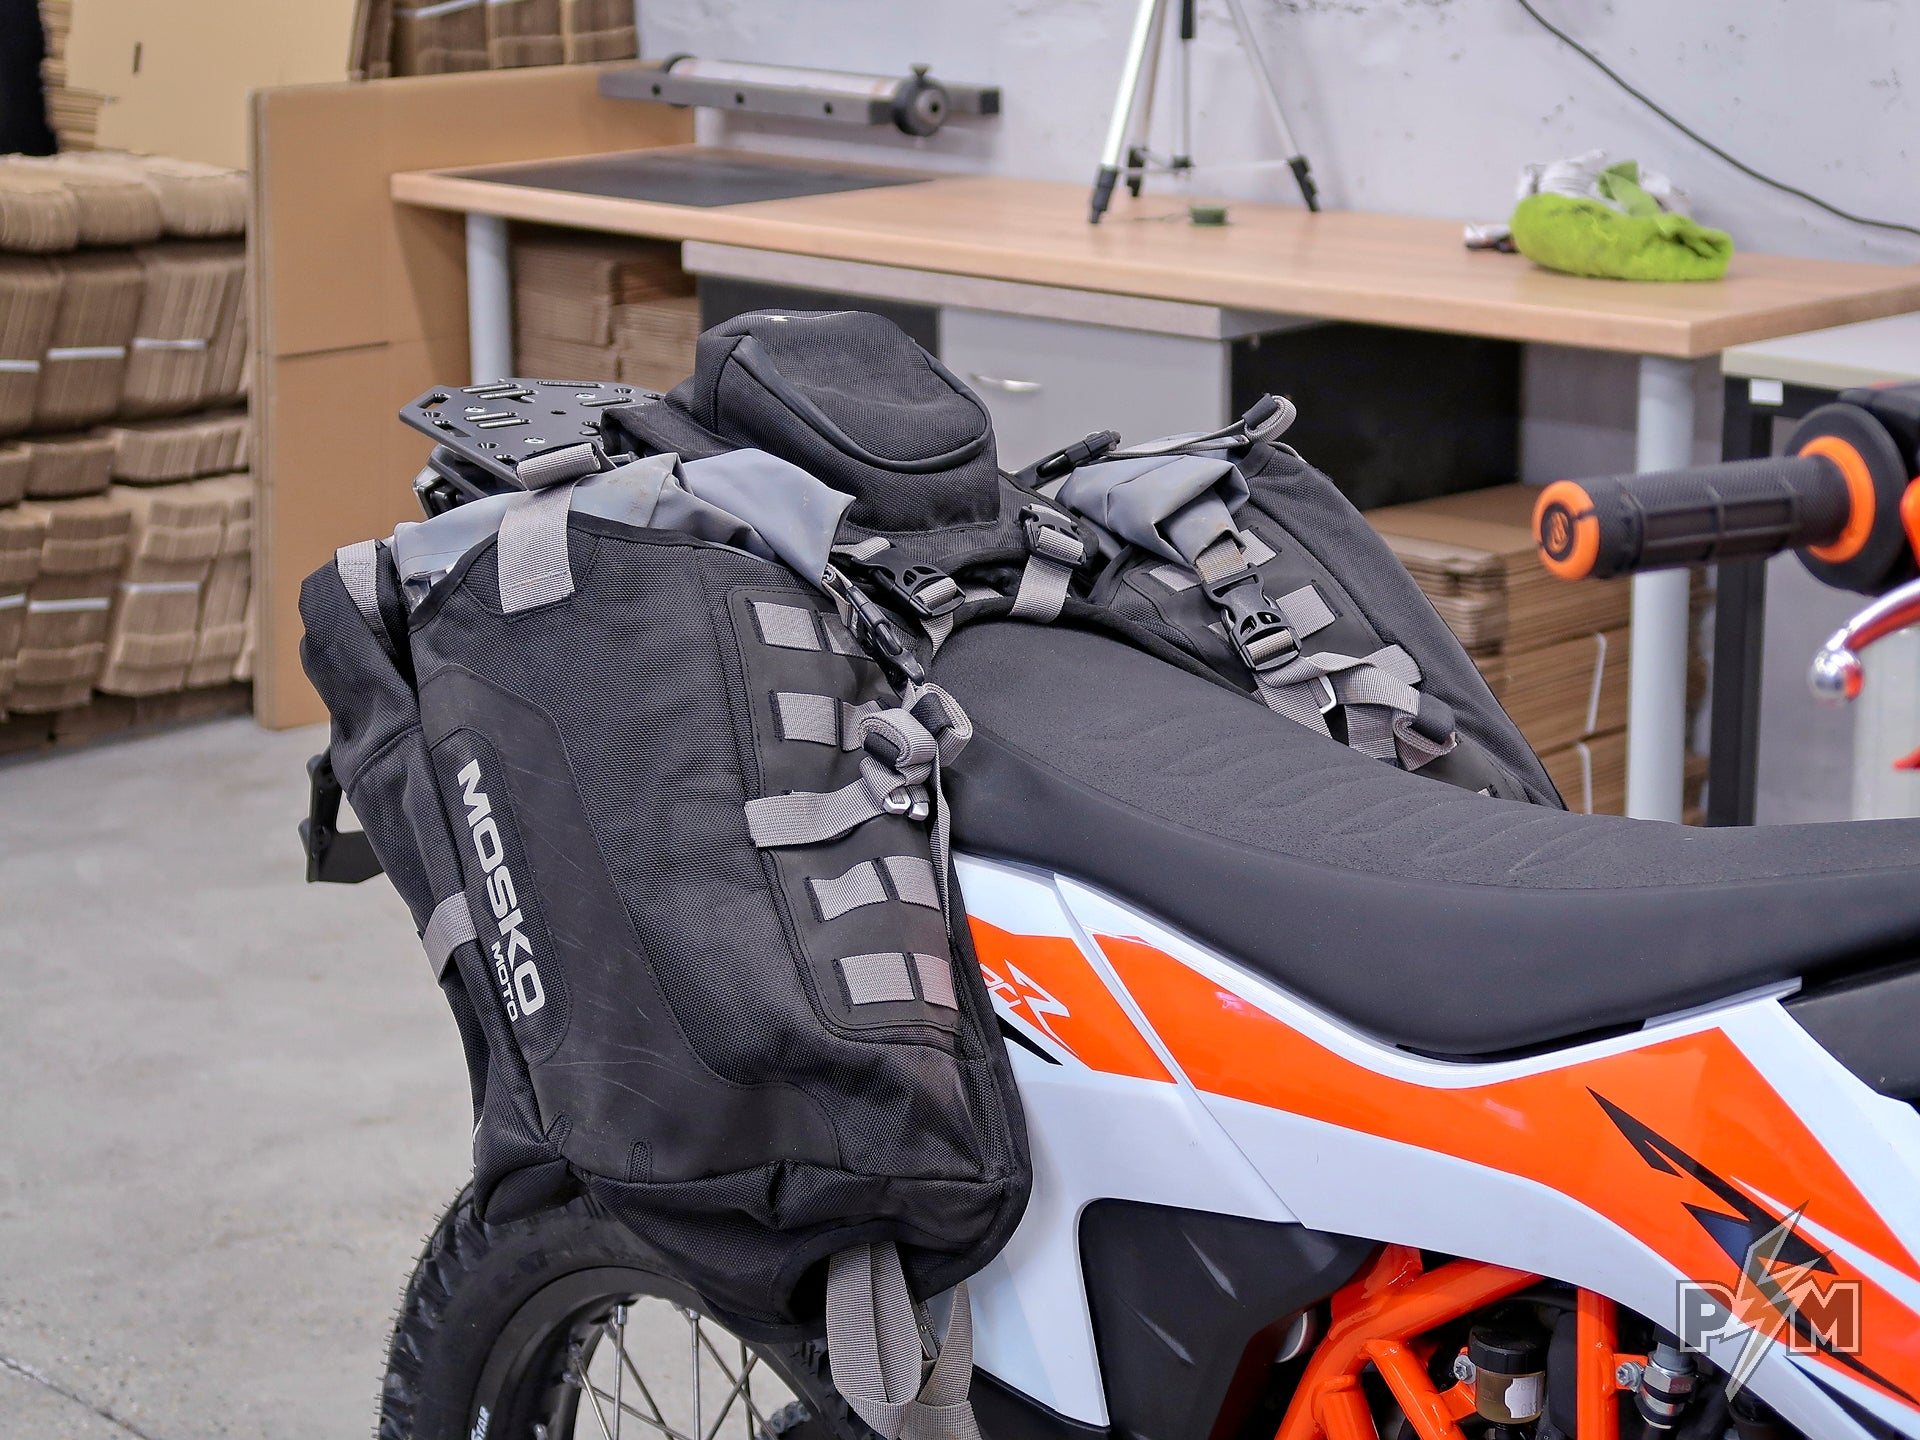 2019+ KTM 690 Enduro Luggage rack and Mosko moto Reckless 40